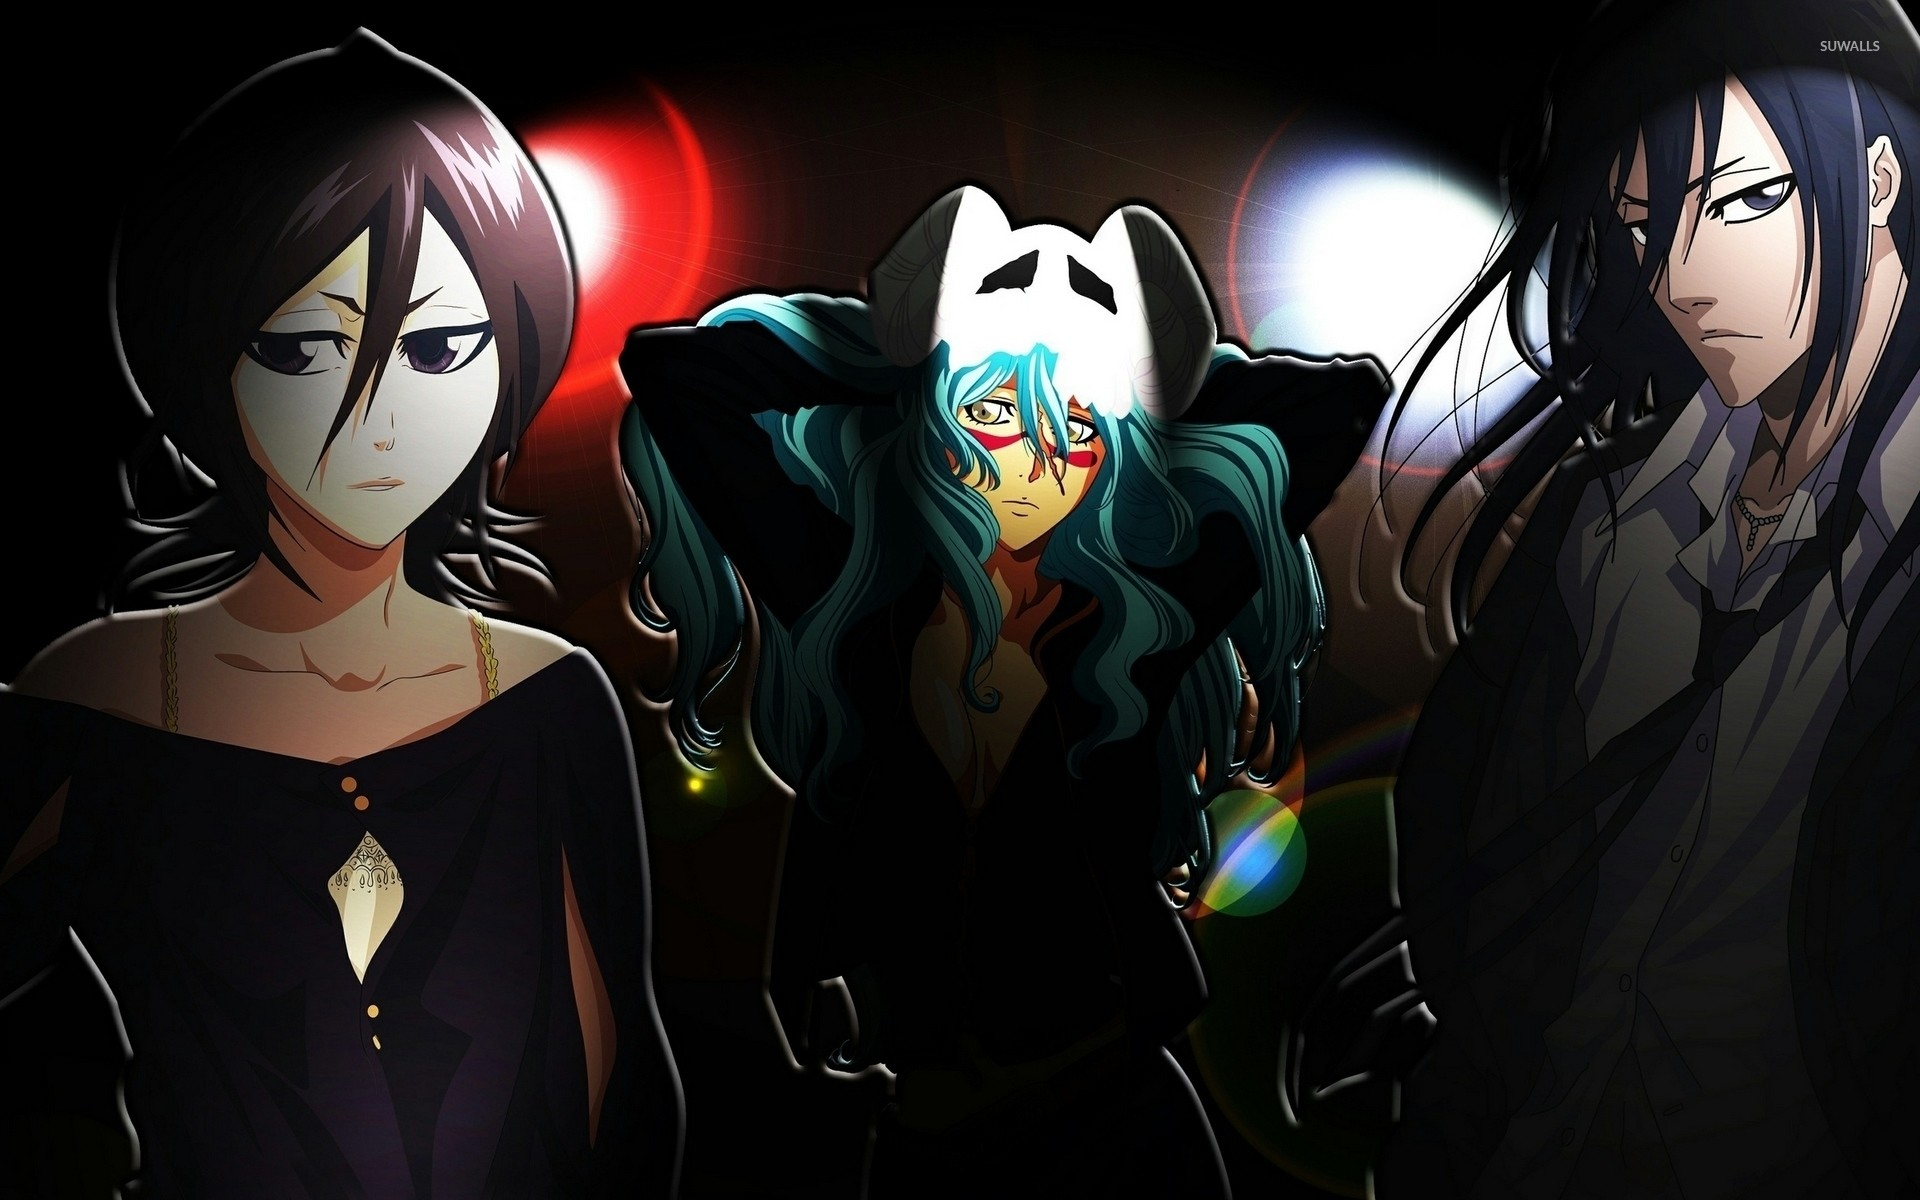 Res: 1920x1200, Rukia, Nelliel and Byakuya - Bleach wallpaper